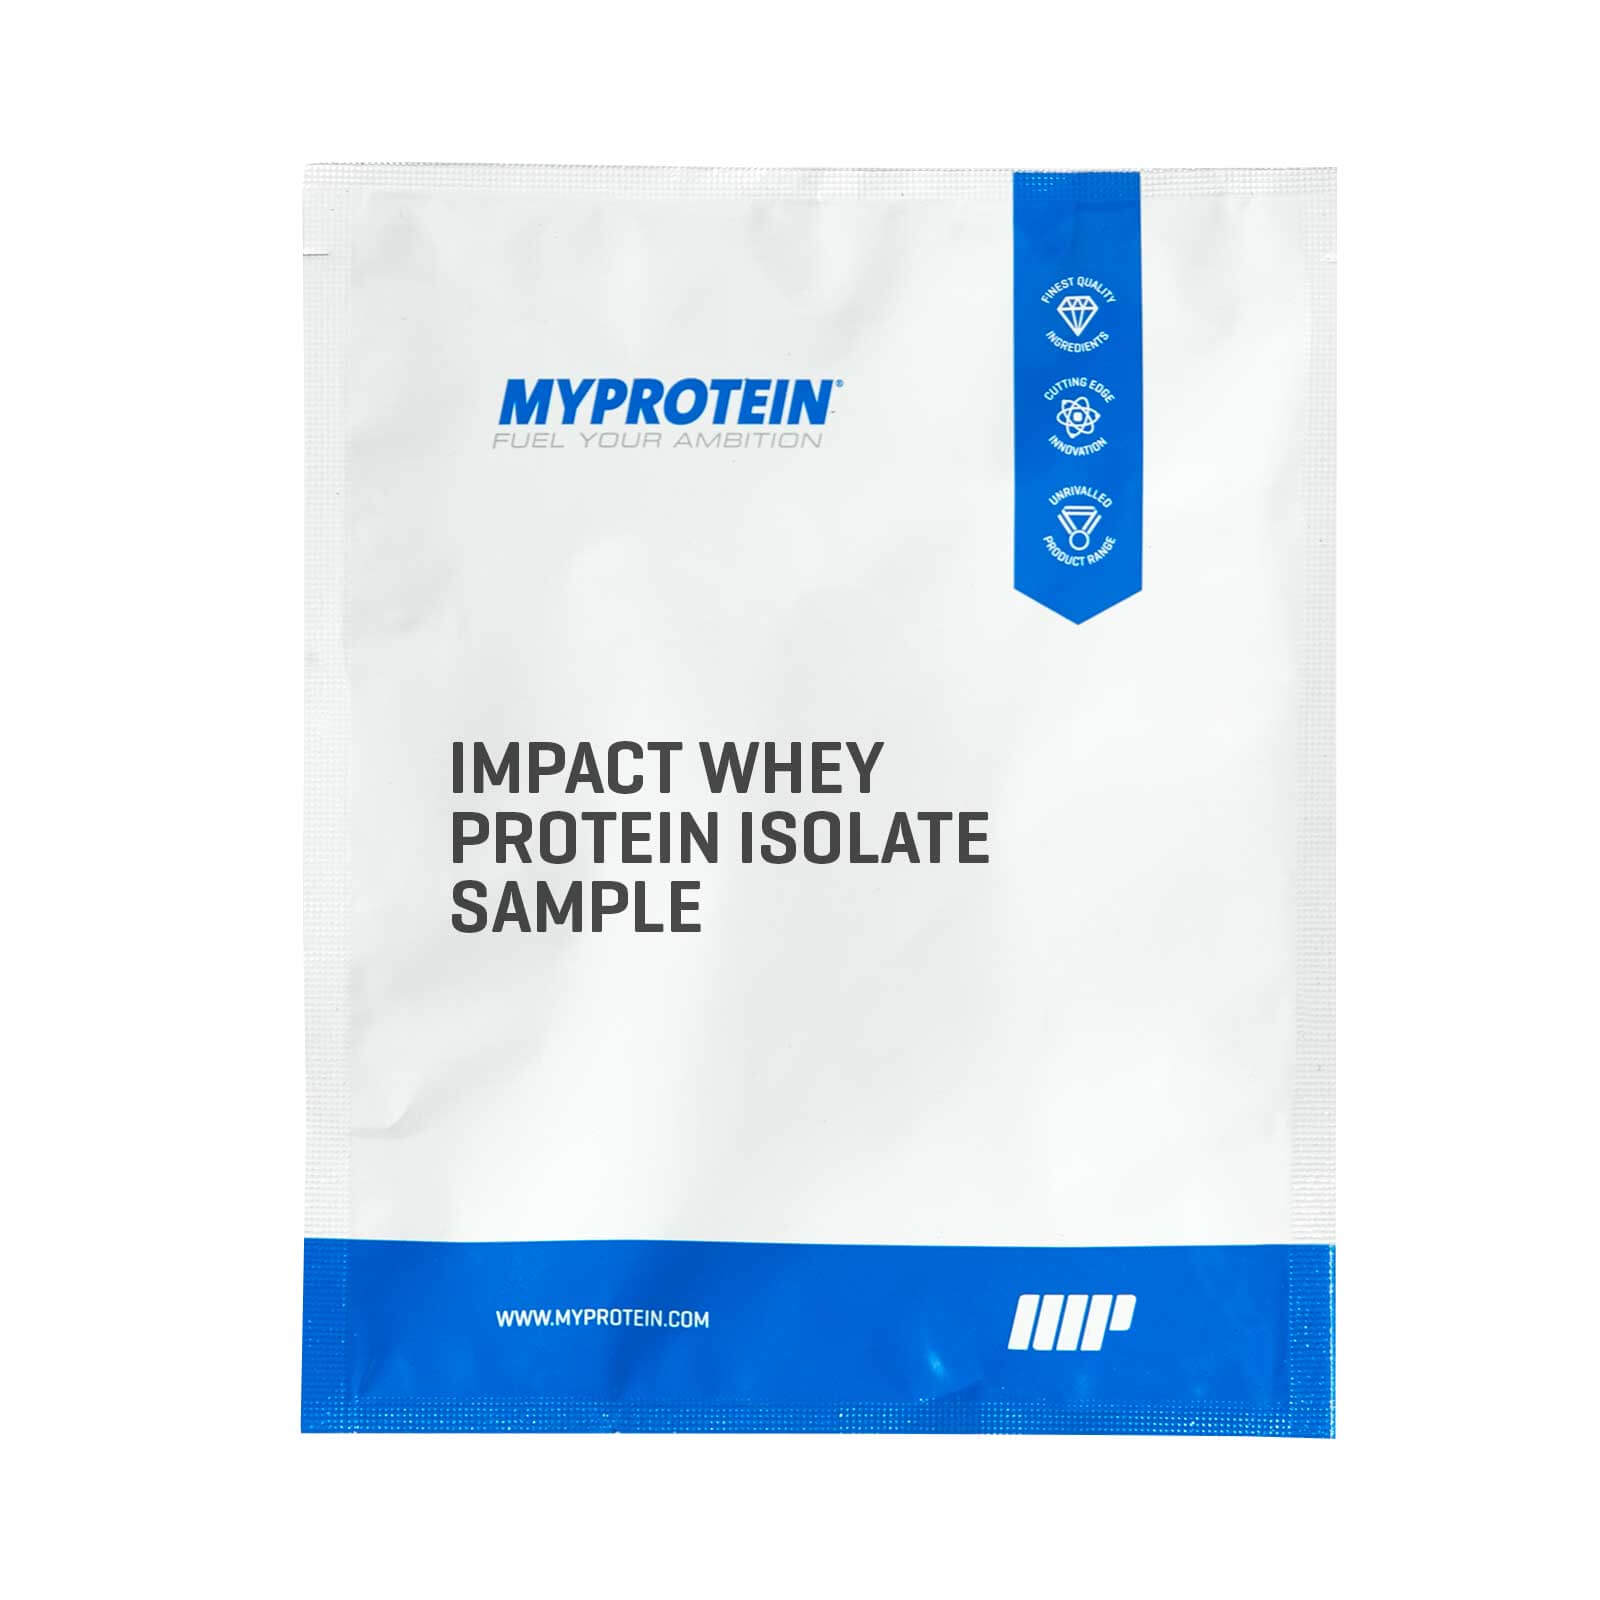 Impact Whey Isolate (sample), Vanilla, 25g